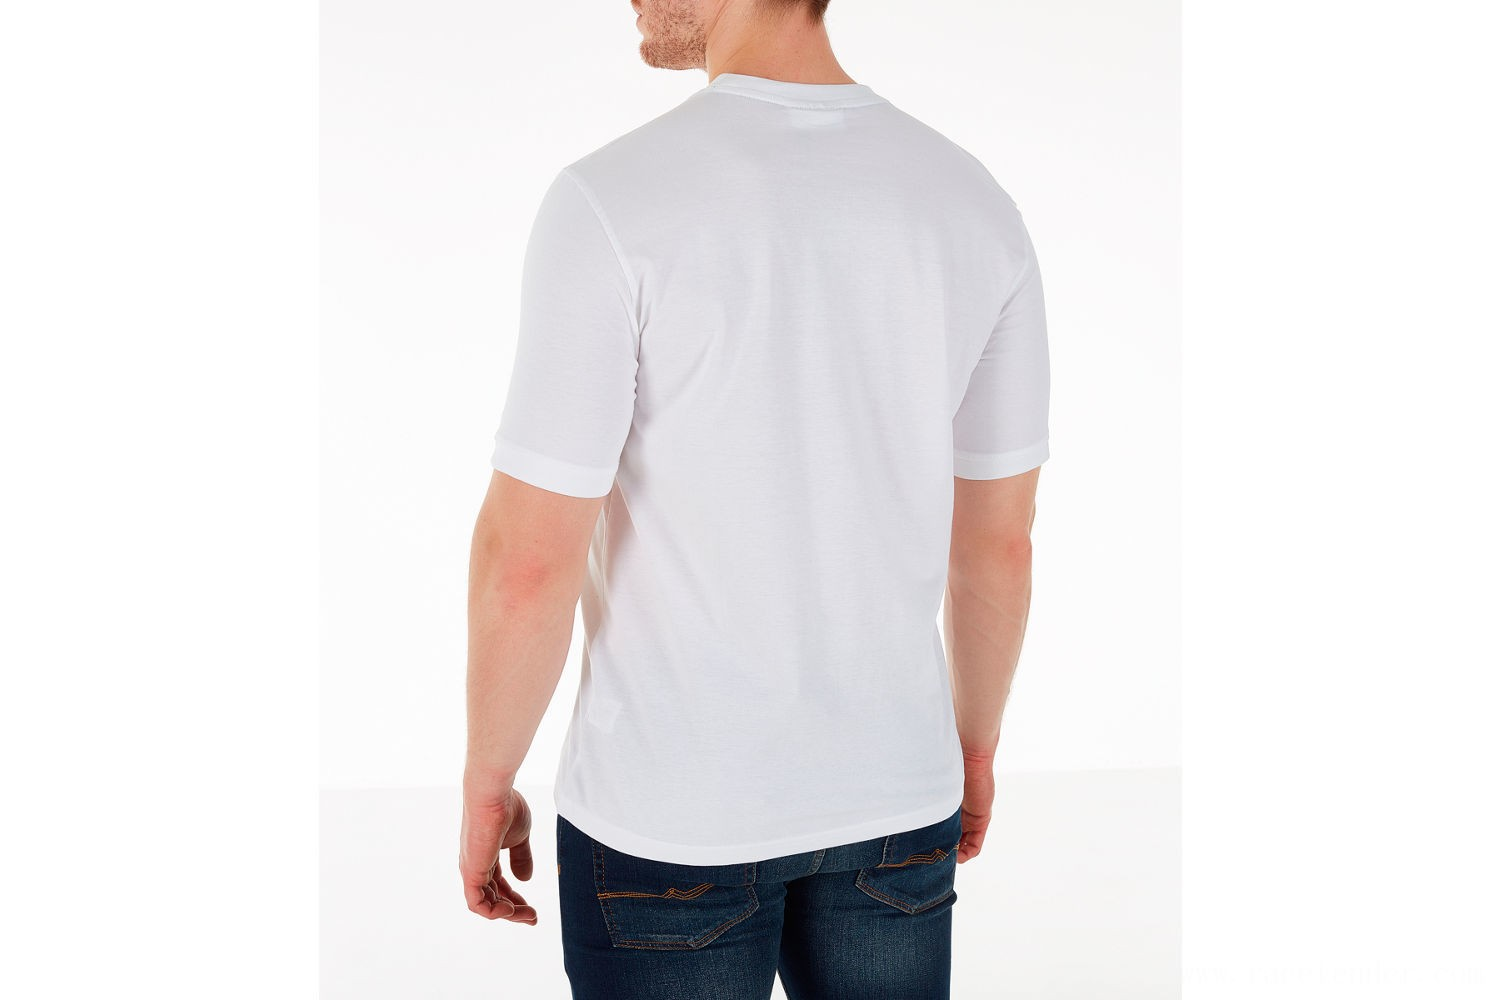 Fila Men's Spiro T-Shirt - White